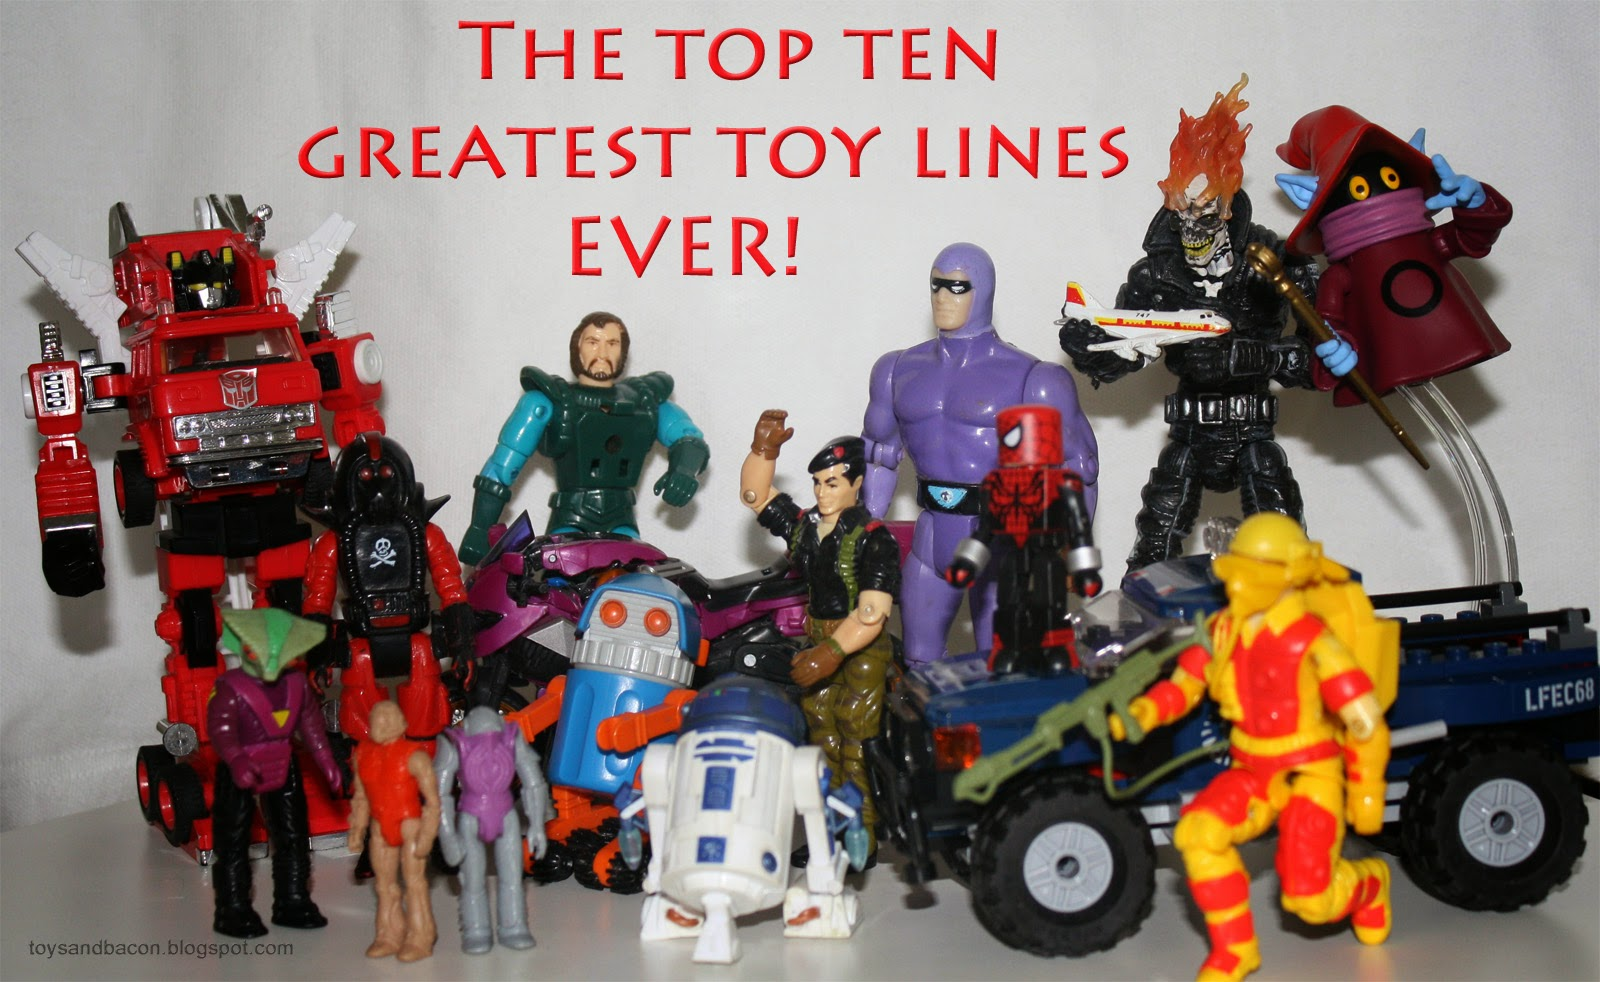 Best Toy Ever : Toys and bacon the top greatest toy lines ever tldr